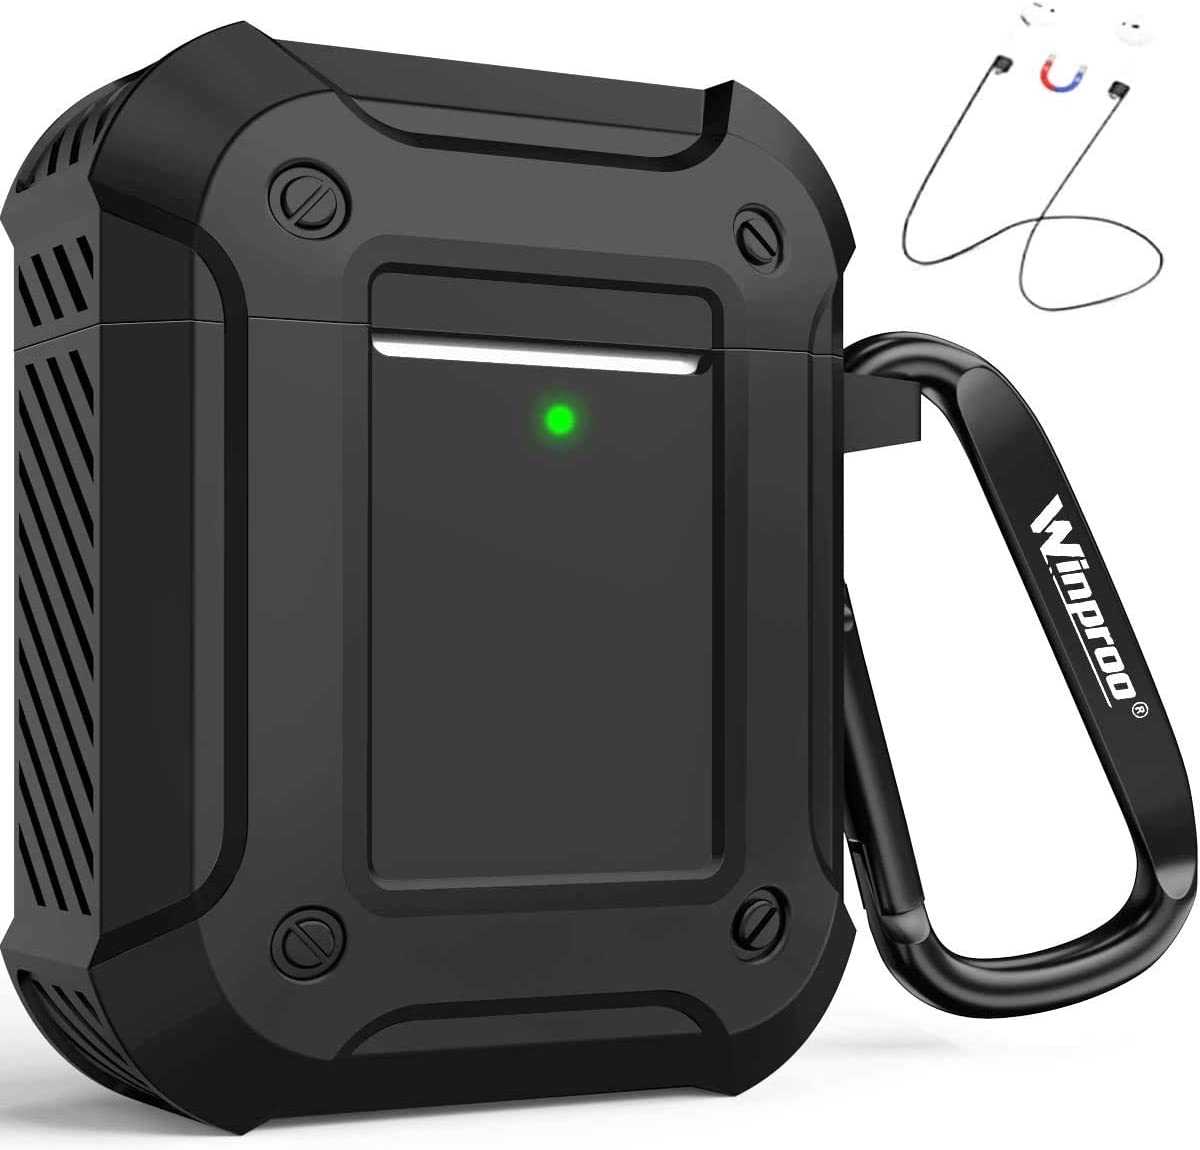 Winproo AirPods Case Cover, Full-Body Rugged Protective Case for Apple AirPods 2 & 1 Charging Case, Resilient Silicone Shock Absorption Air pod Case with Keychain, 4 in 1 airpod s Cover for Men, Black